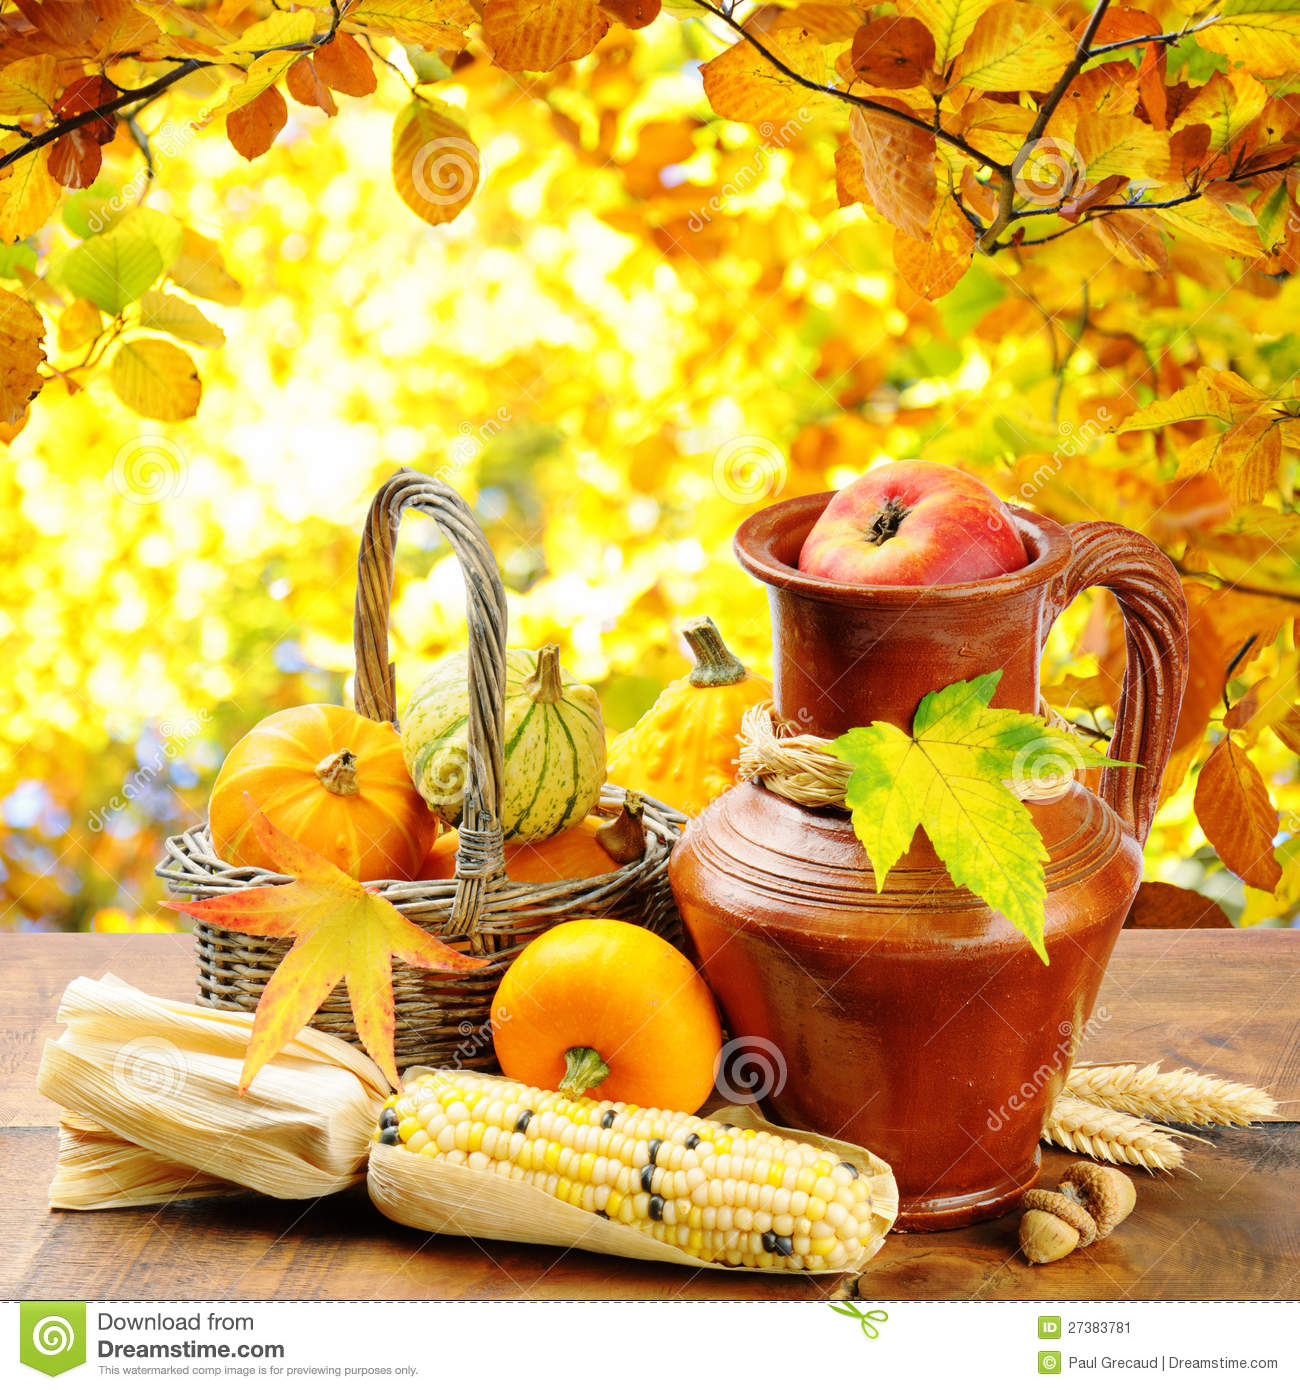 autumn-veg​etables-go​lden-fores​t-backgrou​nd-2738378​1